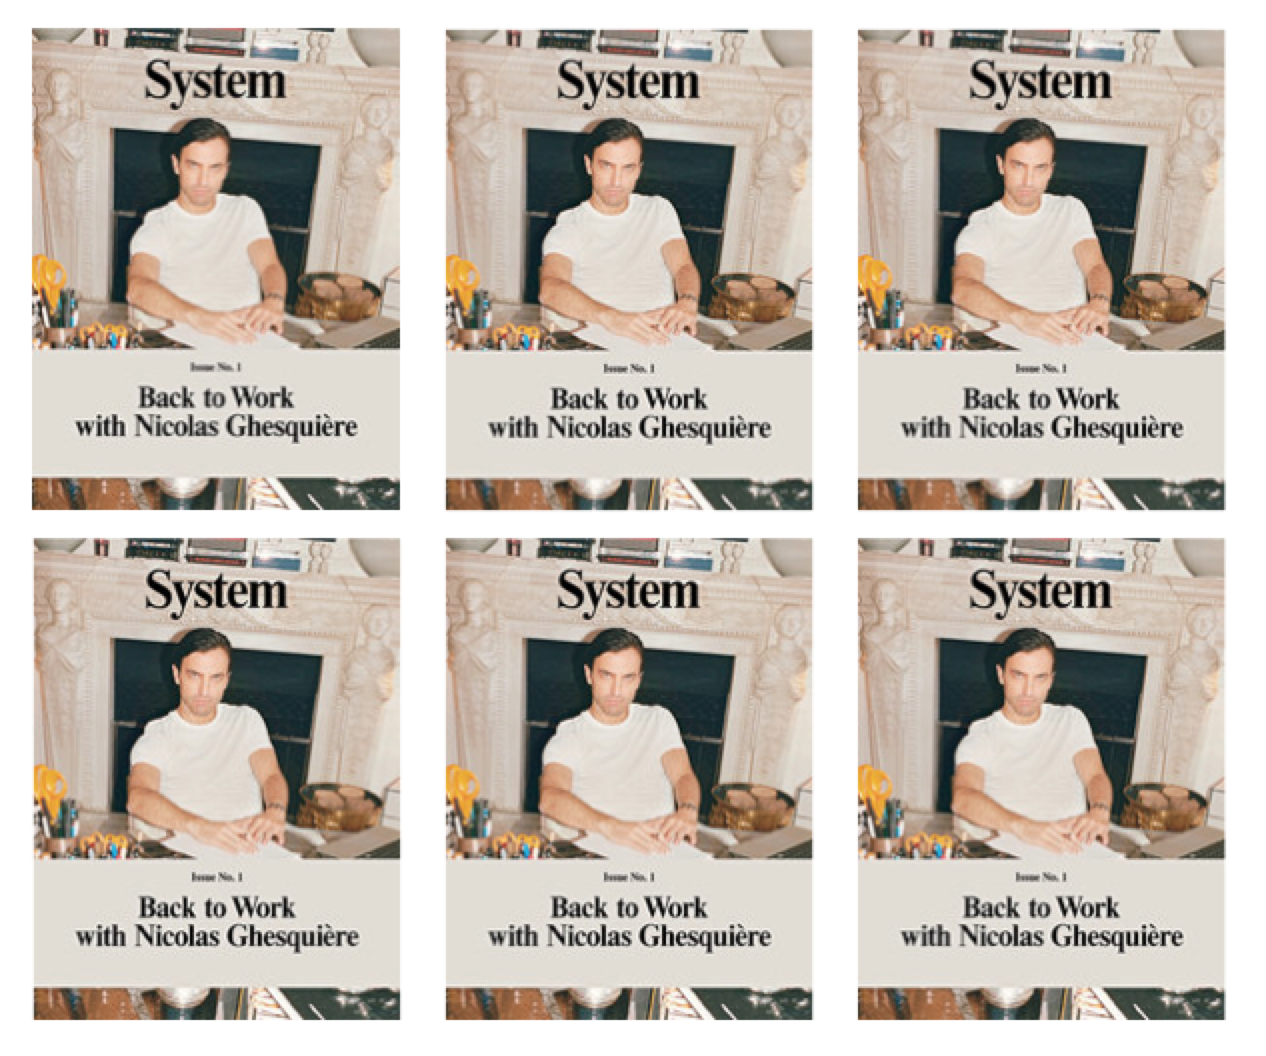 System issue 1 Featuring Nicolas Ghesquiere